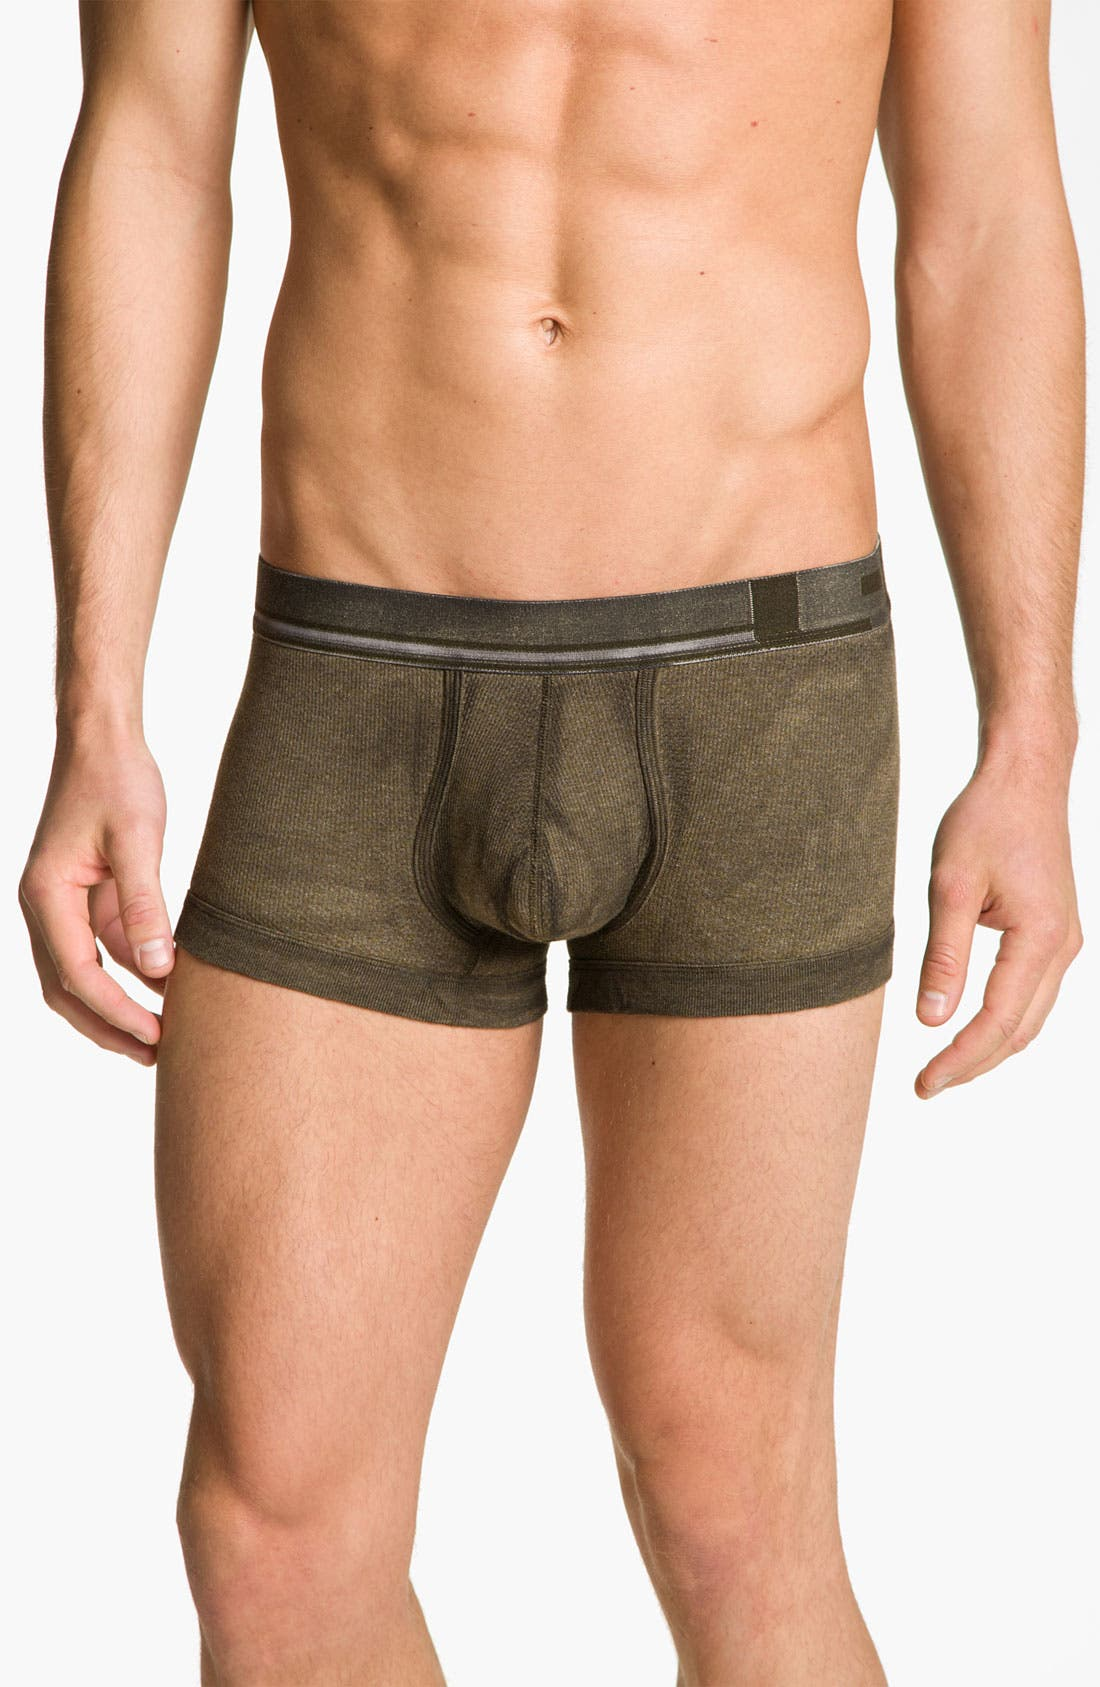 Alternate Image 1 Selected - C-IN2 'Army' Trunks